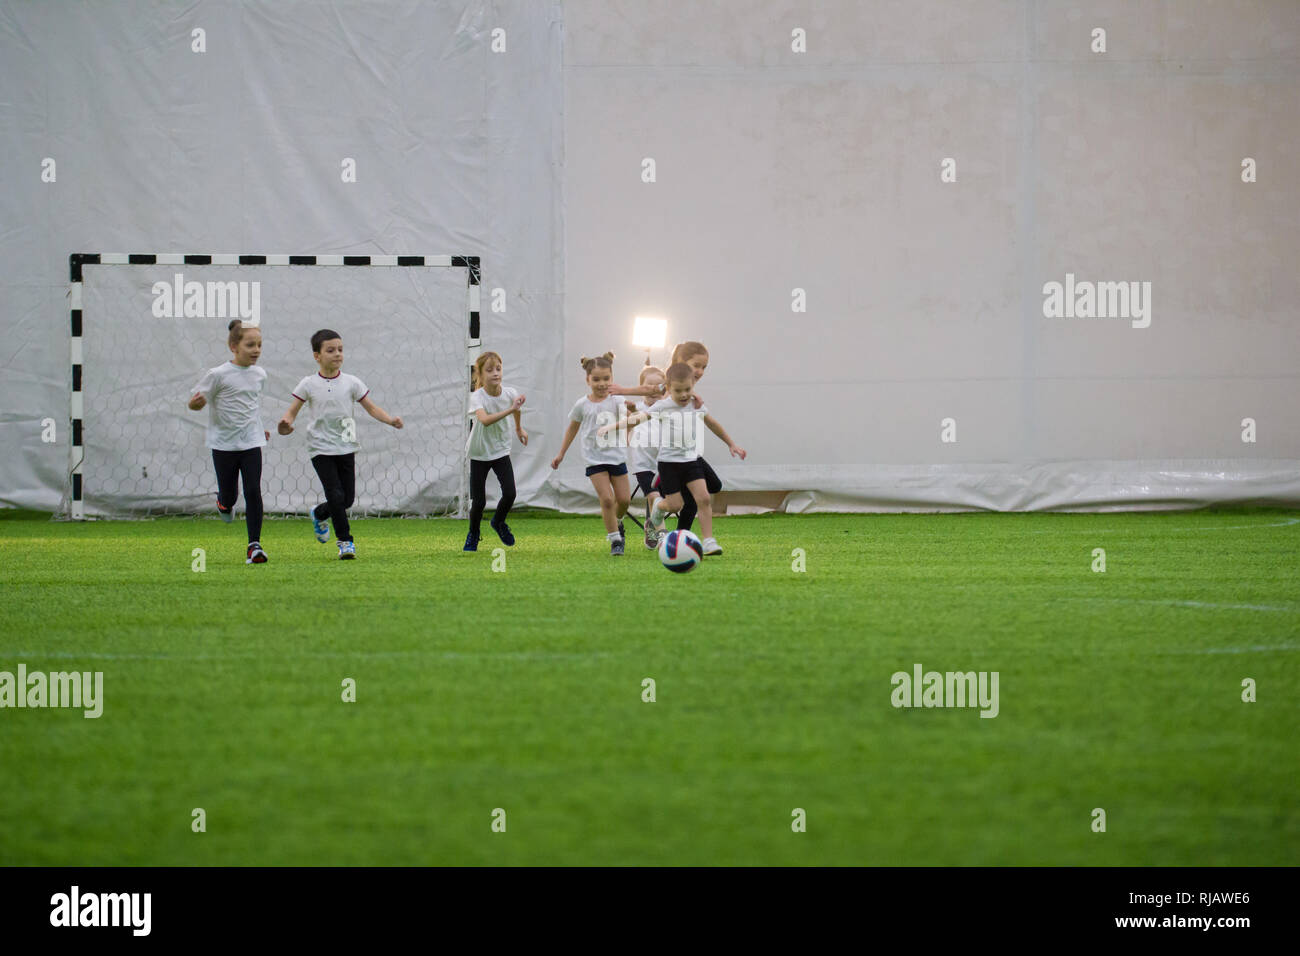 Football arena indoors. Children team playing football - Stock Image